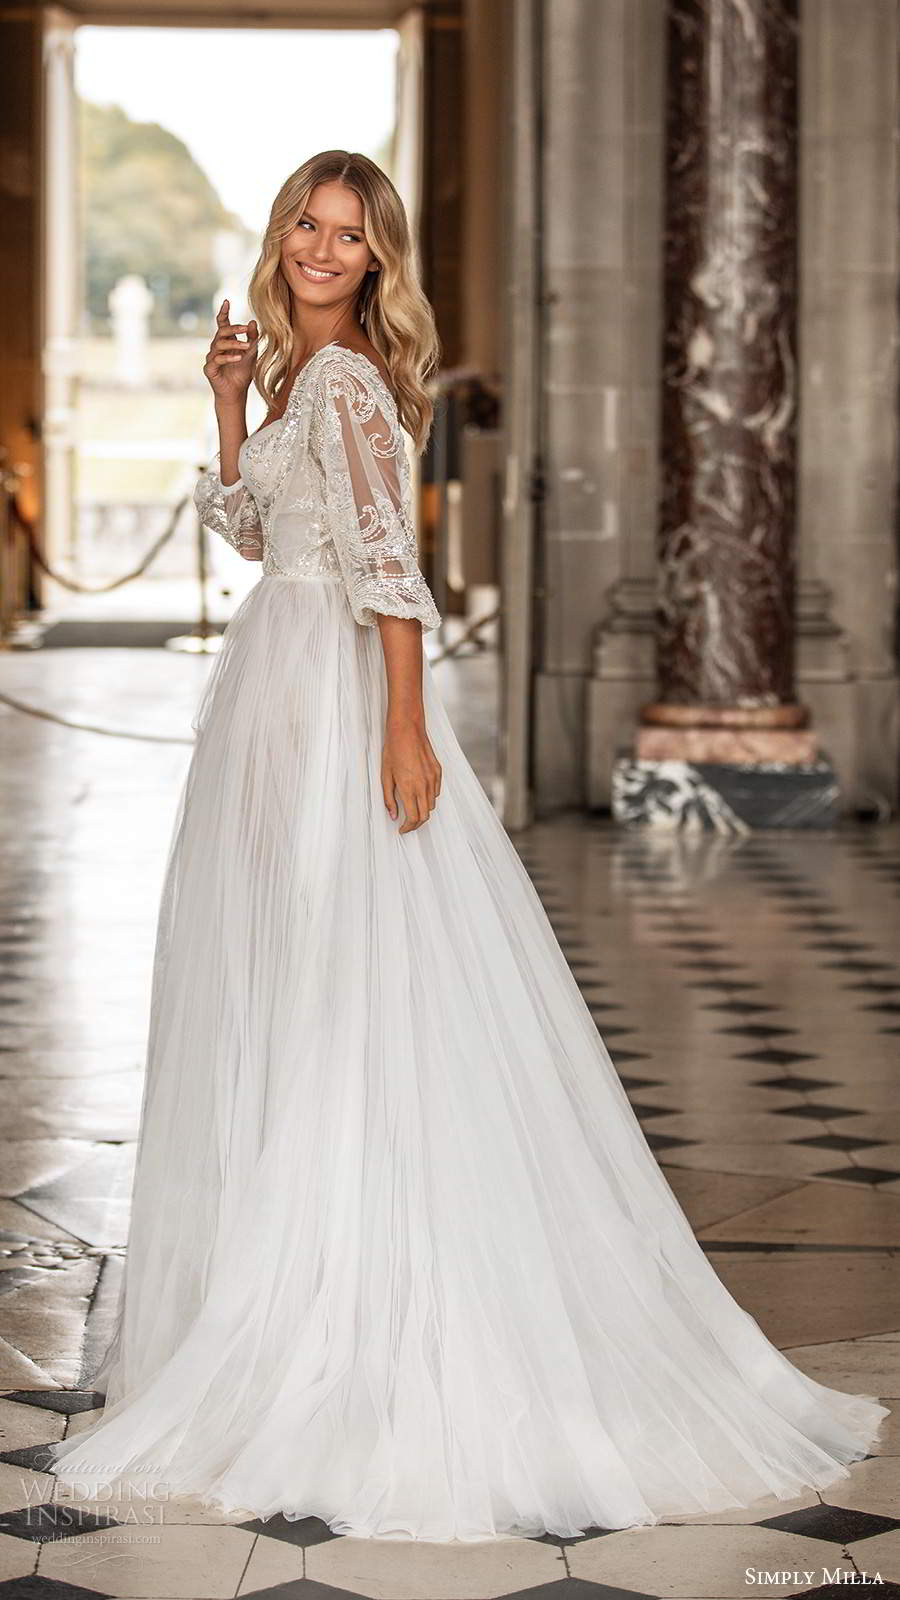 simply milla nova 2020 bridal sheer half balloon sleeves sweetheart neckline embellished bodice aline ball gown boho wedding dress sweep train (9) bv